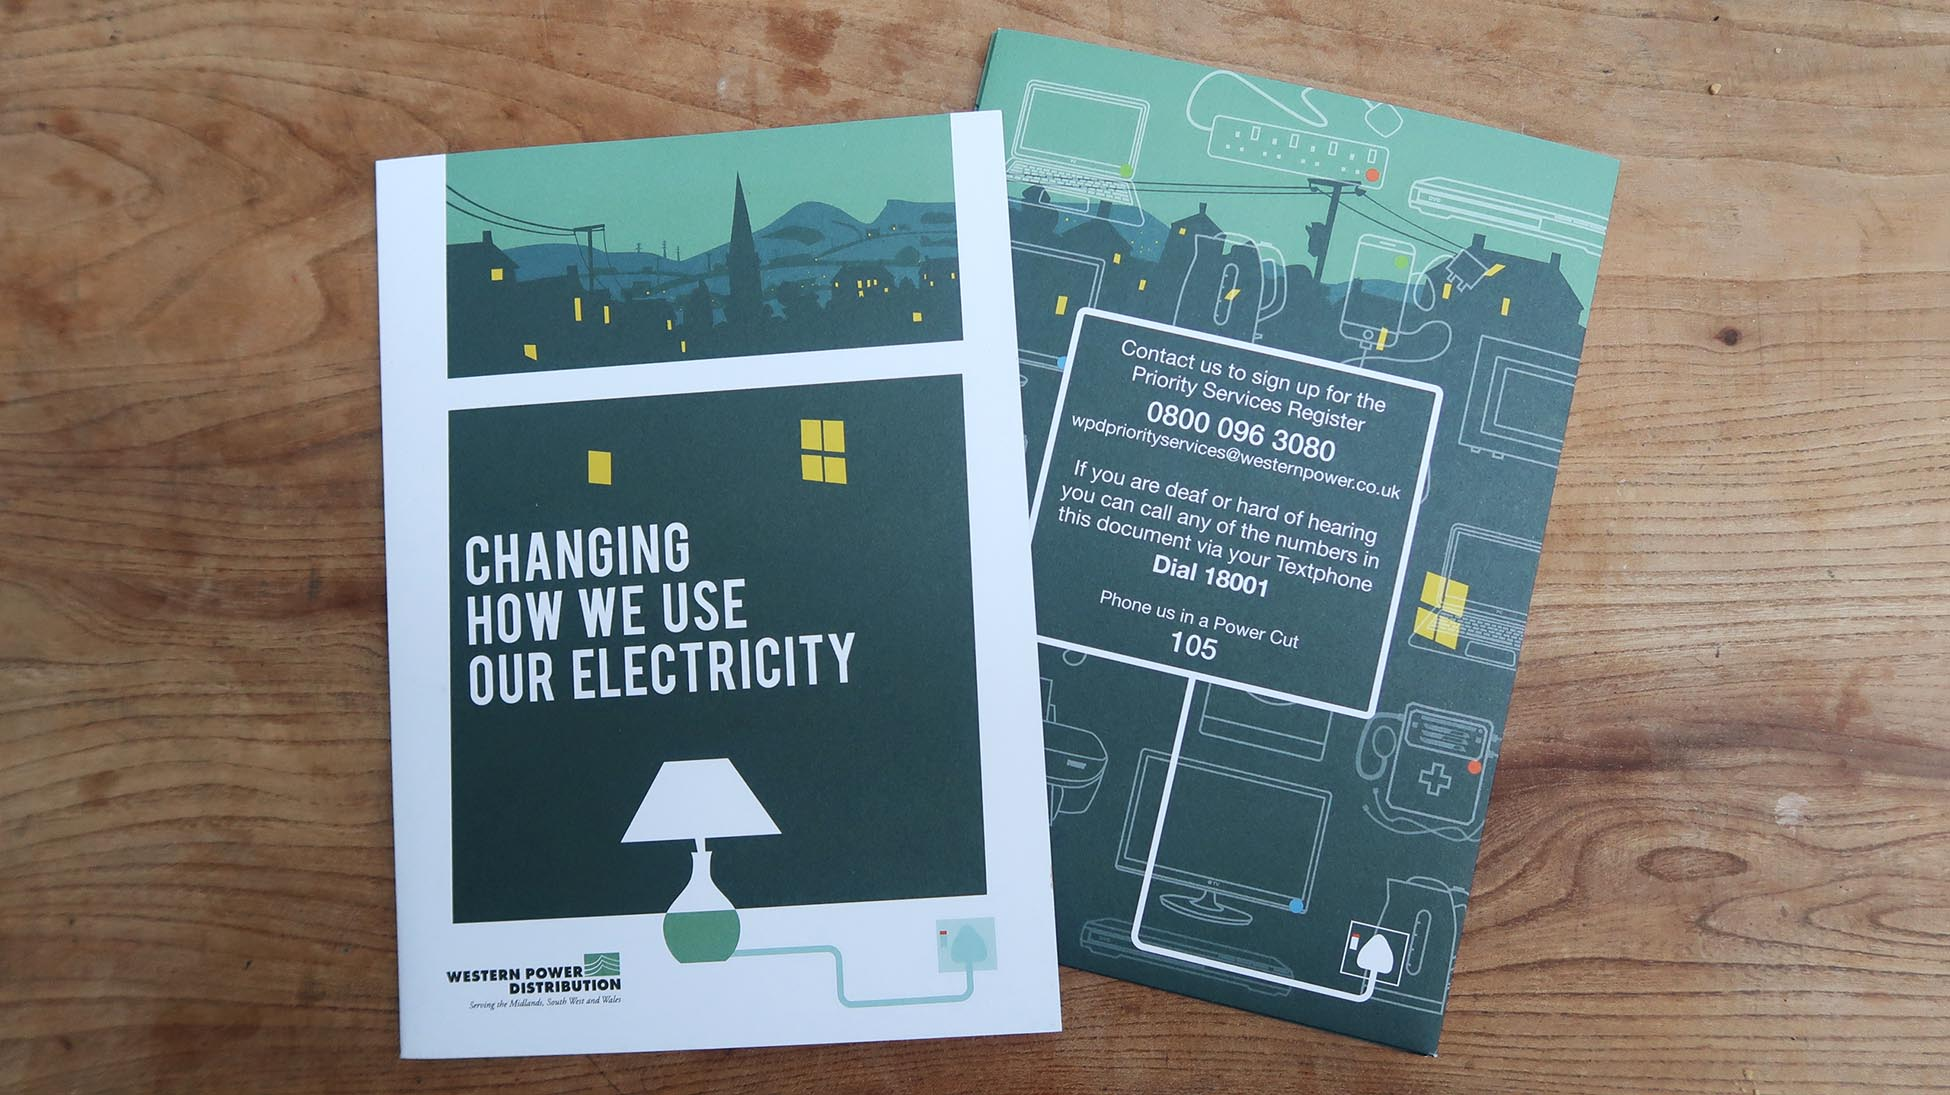 Electricity Use Folder front and back